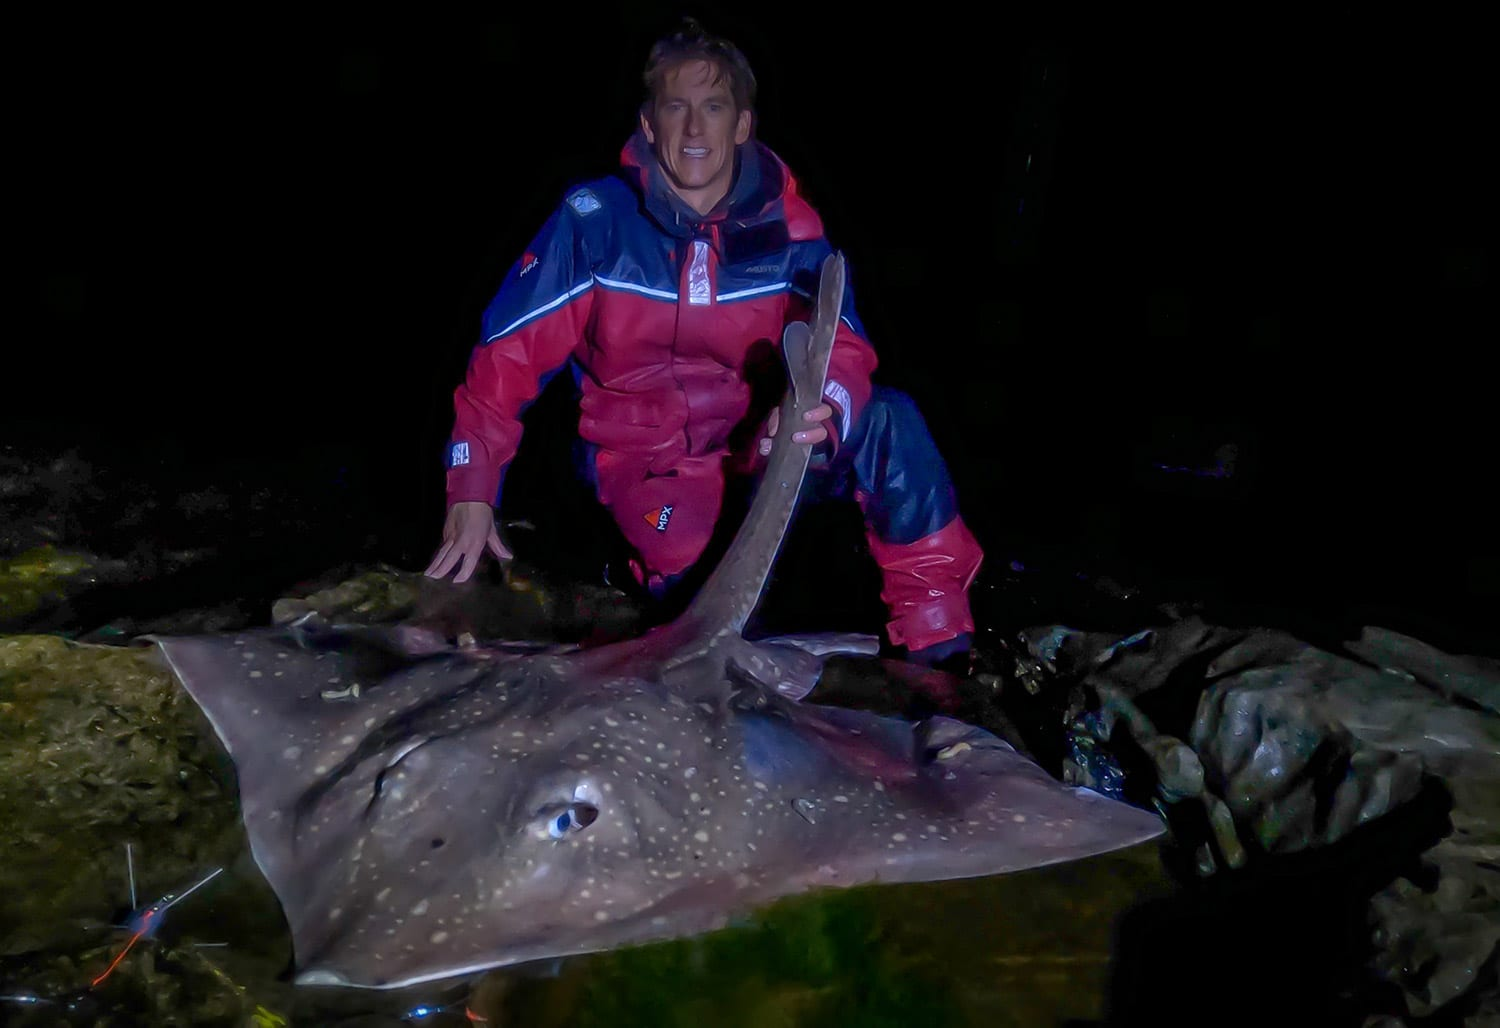 a big flapper skate on the rocks ready for release